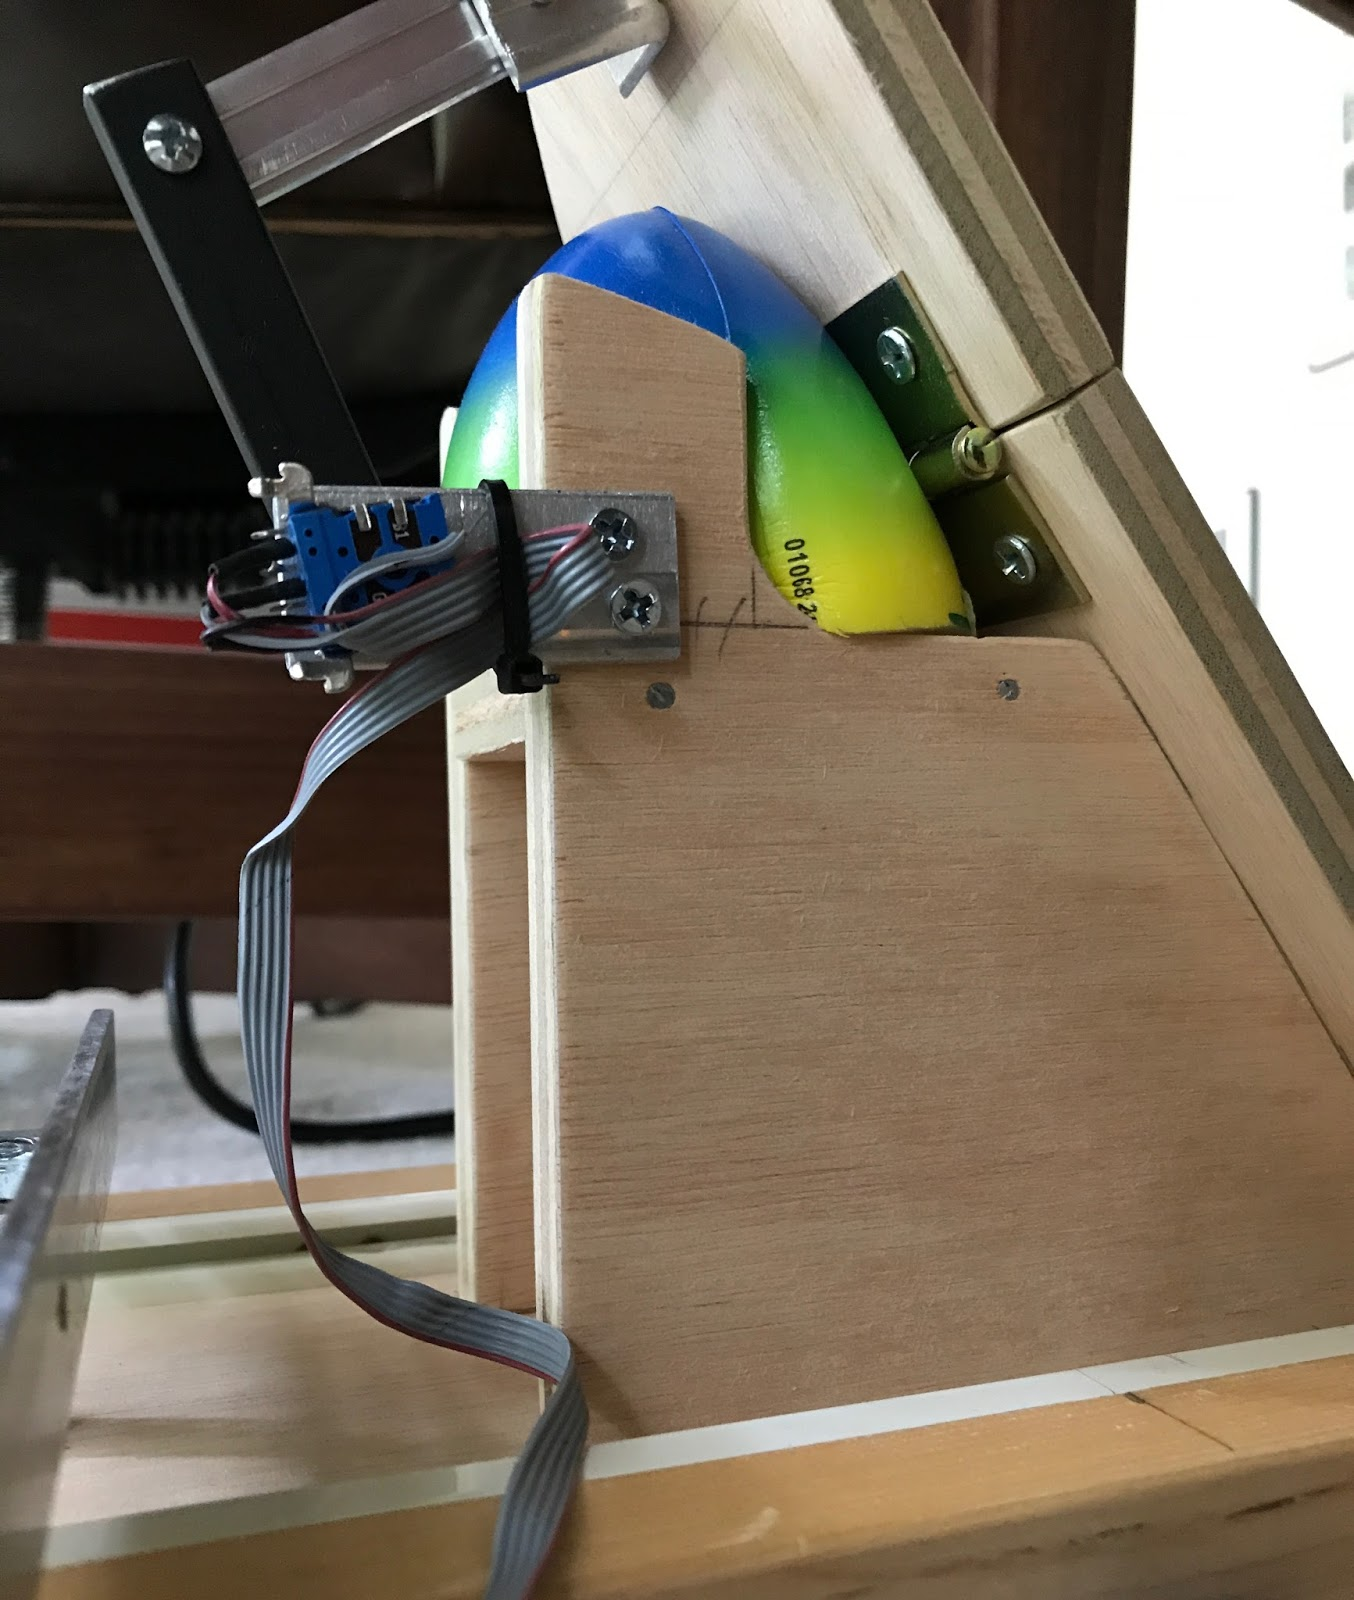 84Park Blogs: Arduino and FSX - Update for Rudder Pedals and Brakes